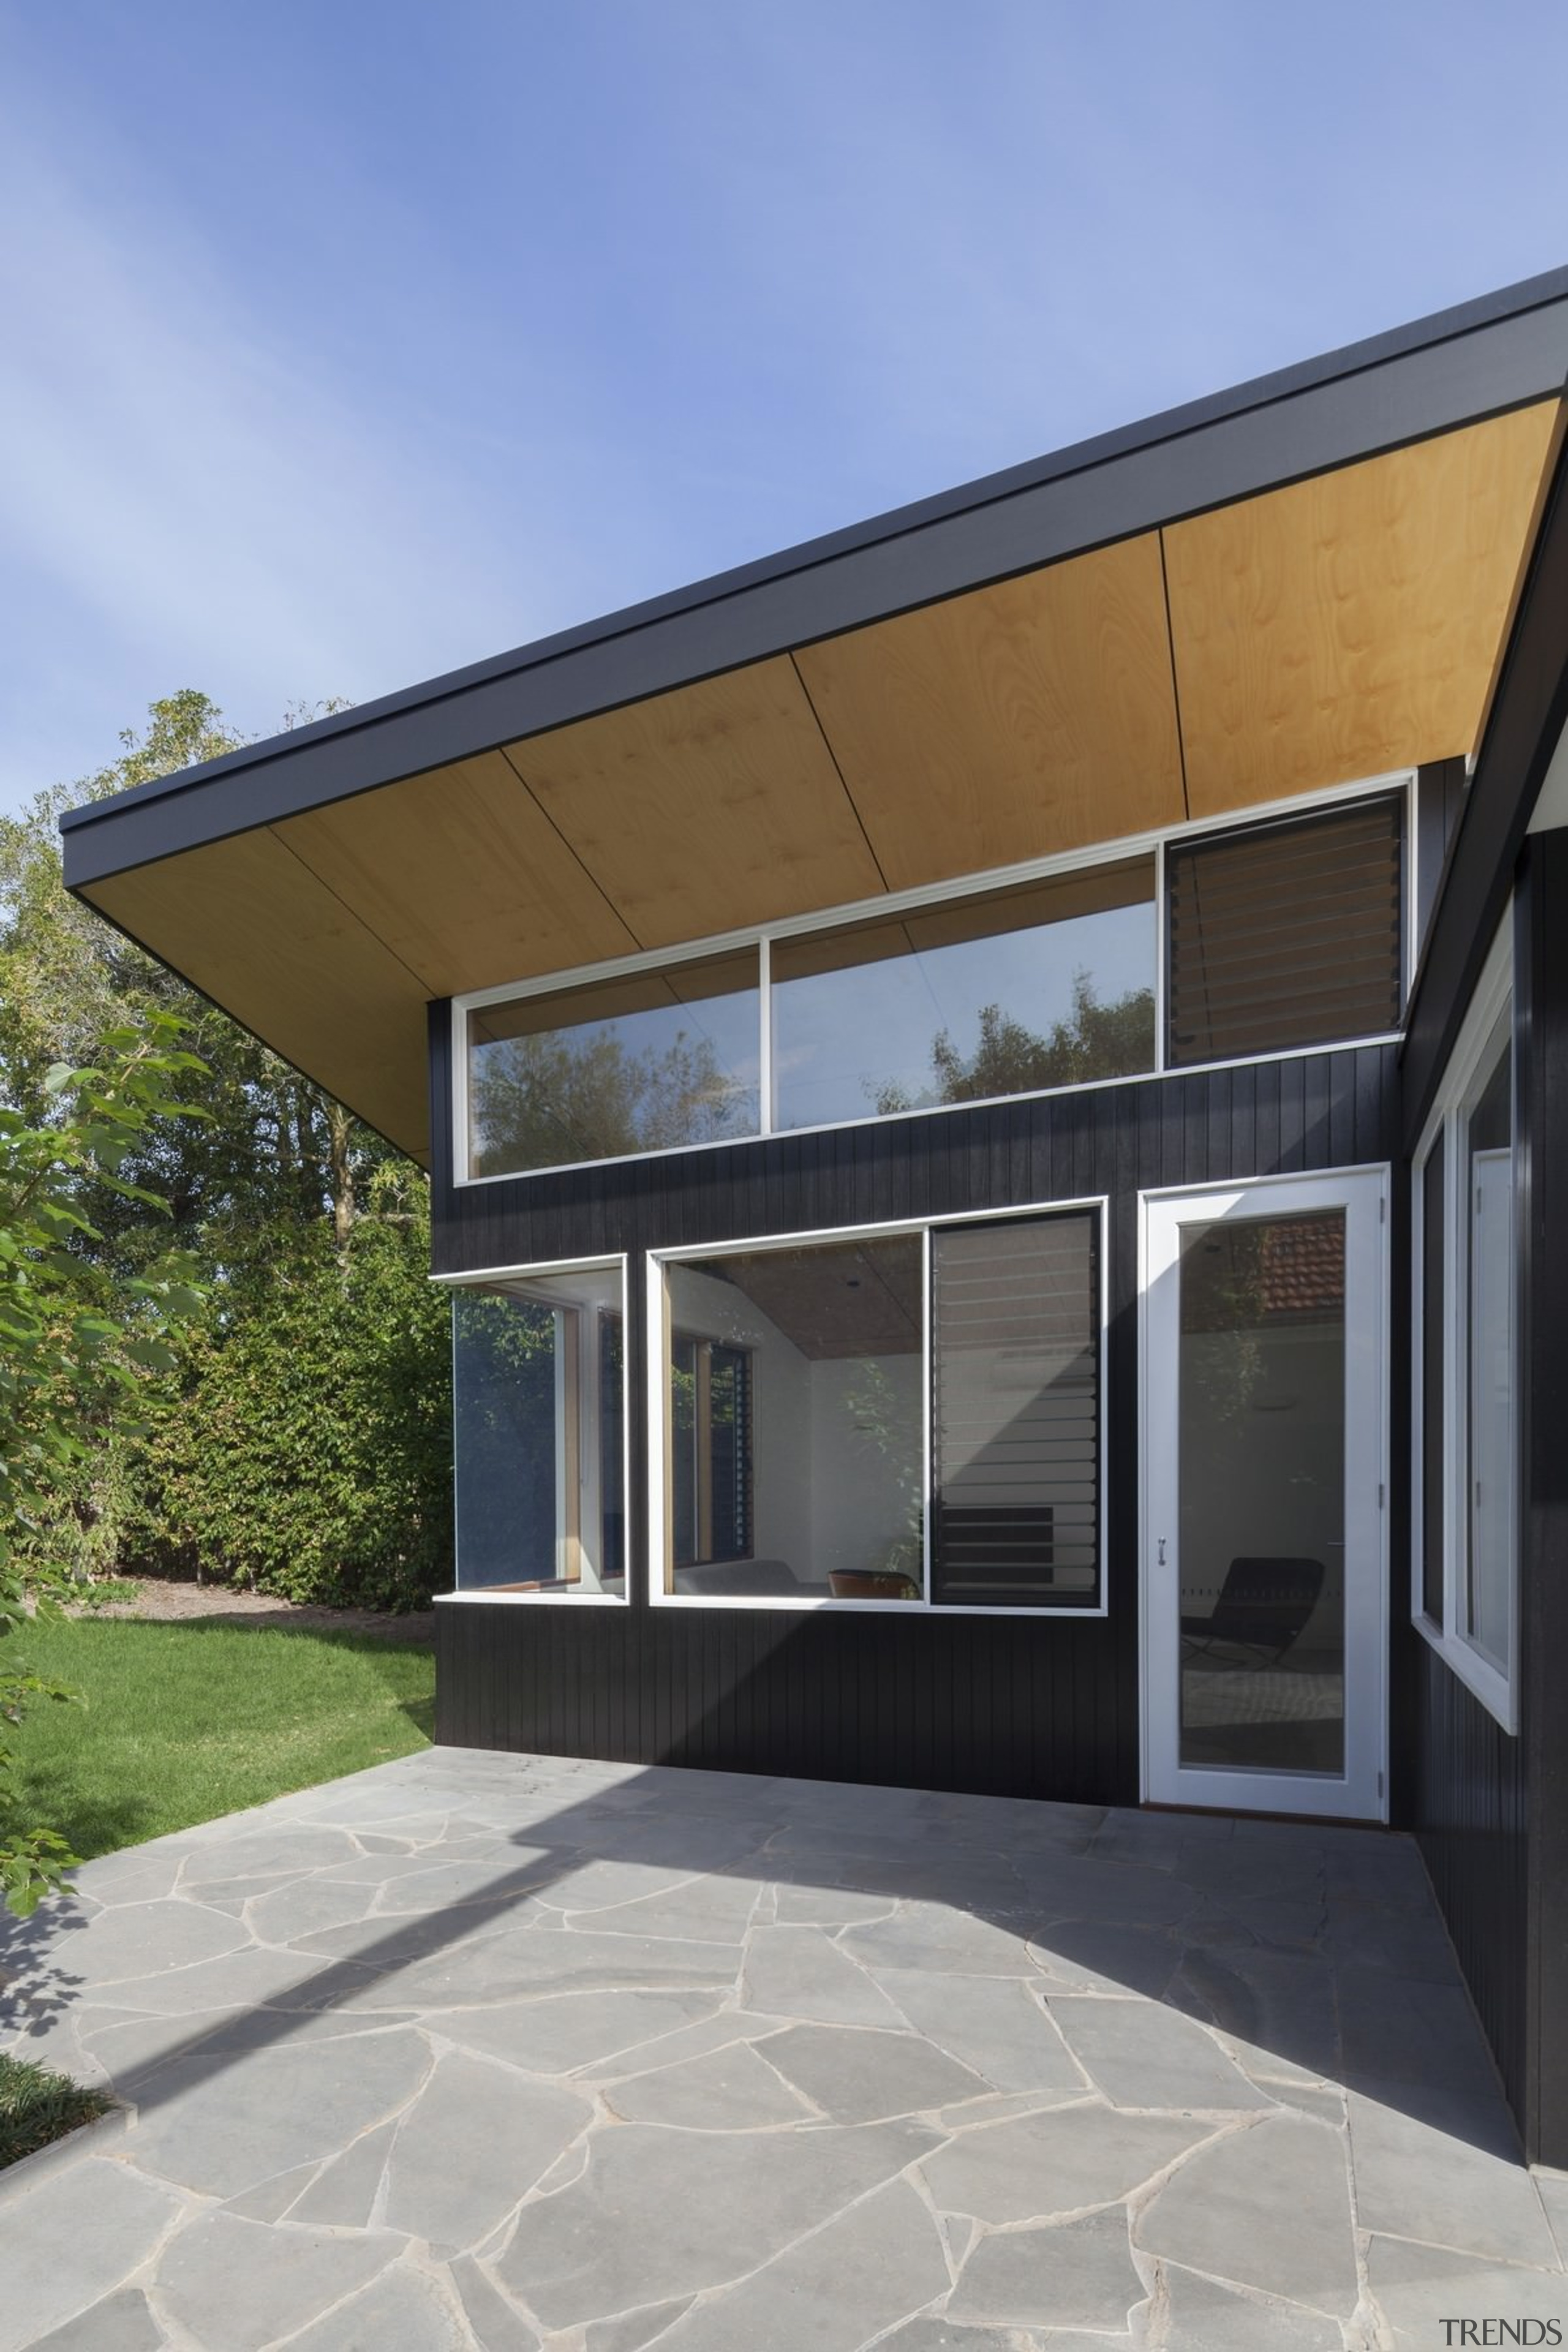 This large wood soffit runs around the living architecture, building, daylighting, elevation, facade, home, house, property, real estate, residential area, siding, villa, window, gray, teal